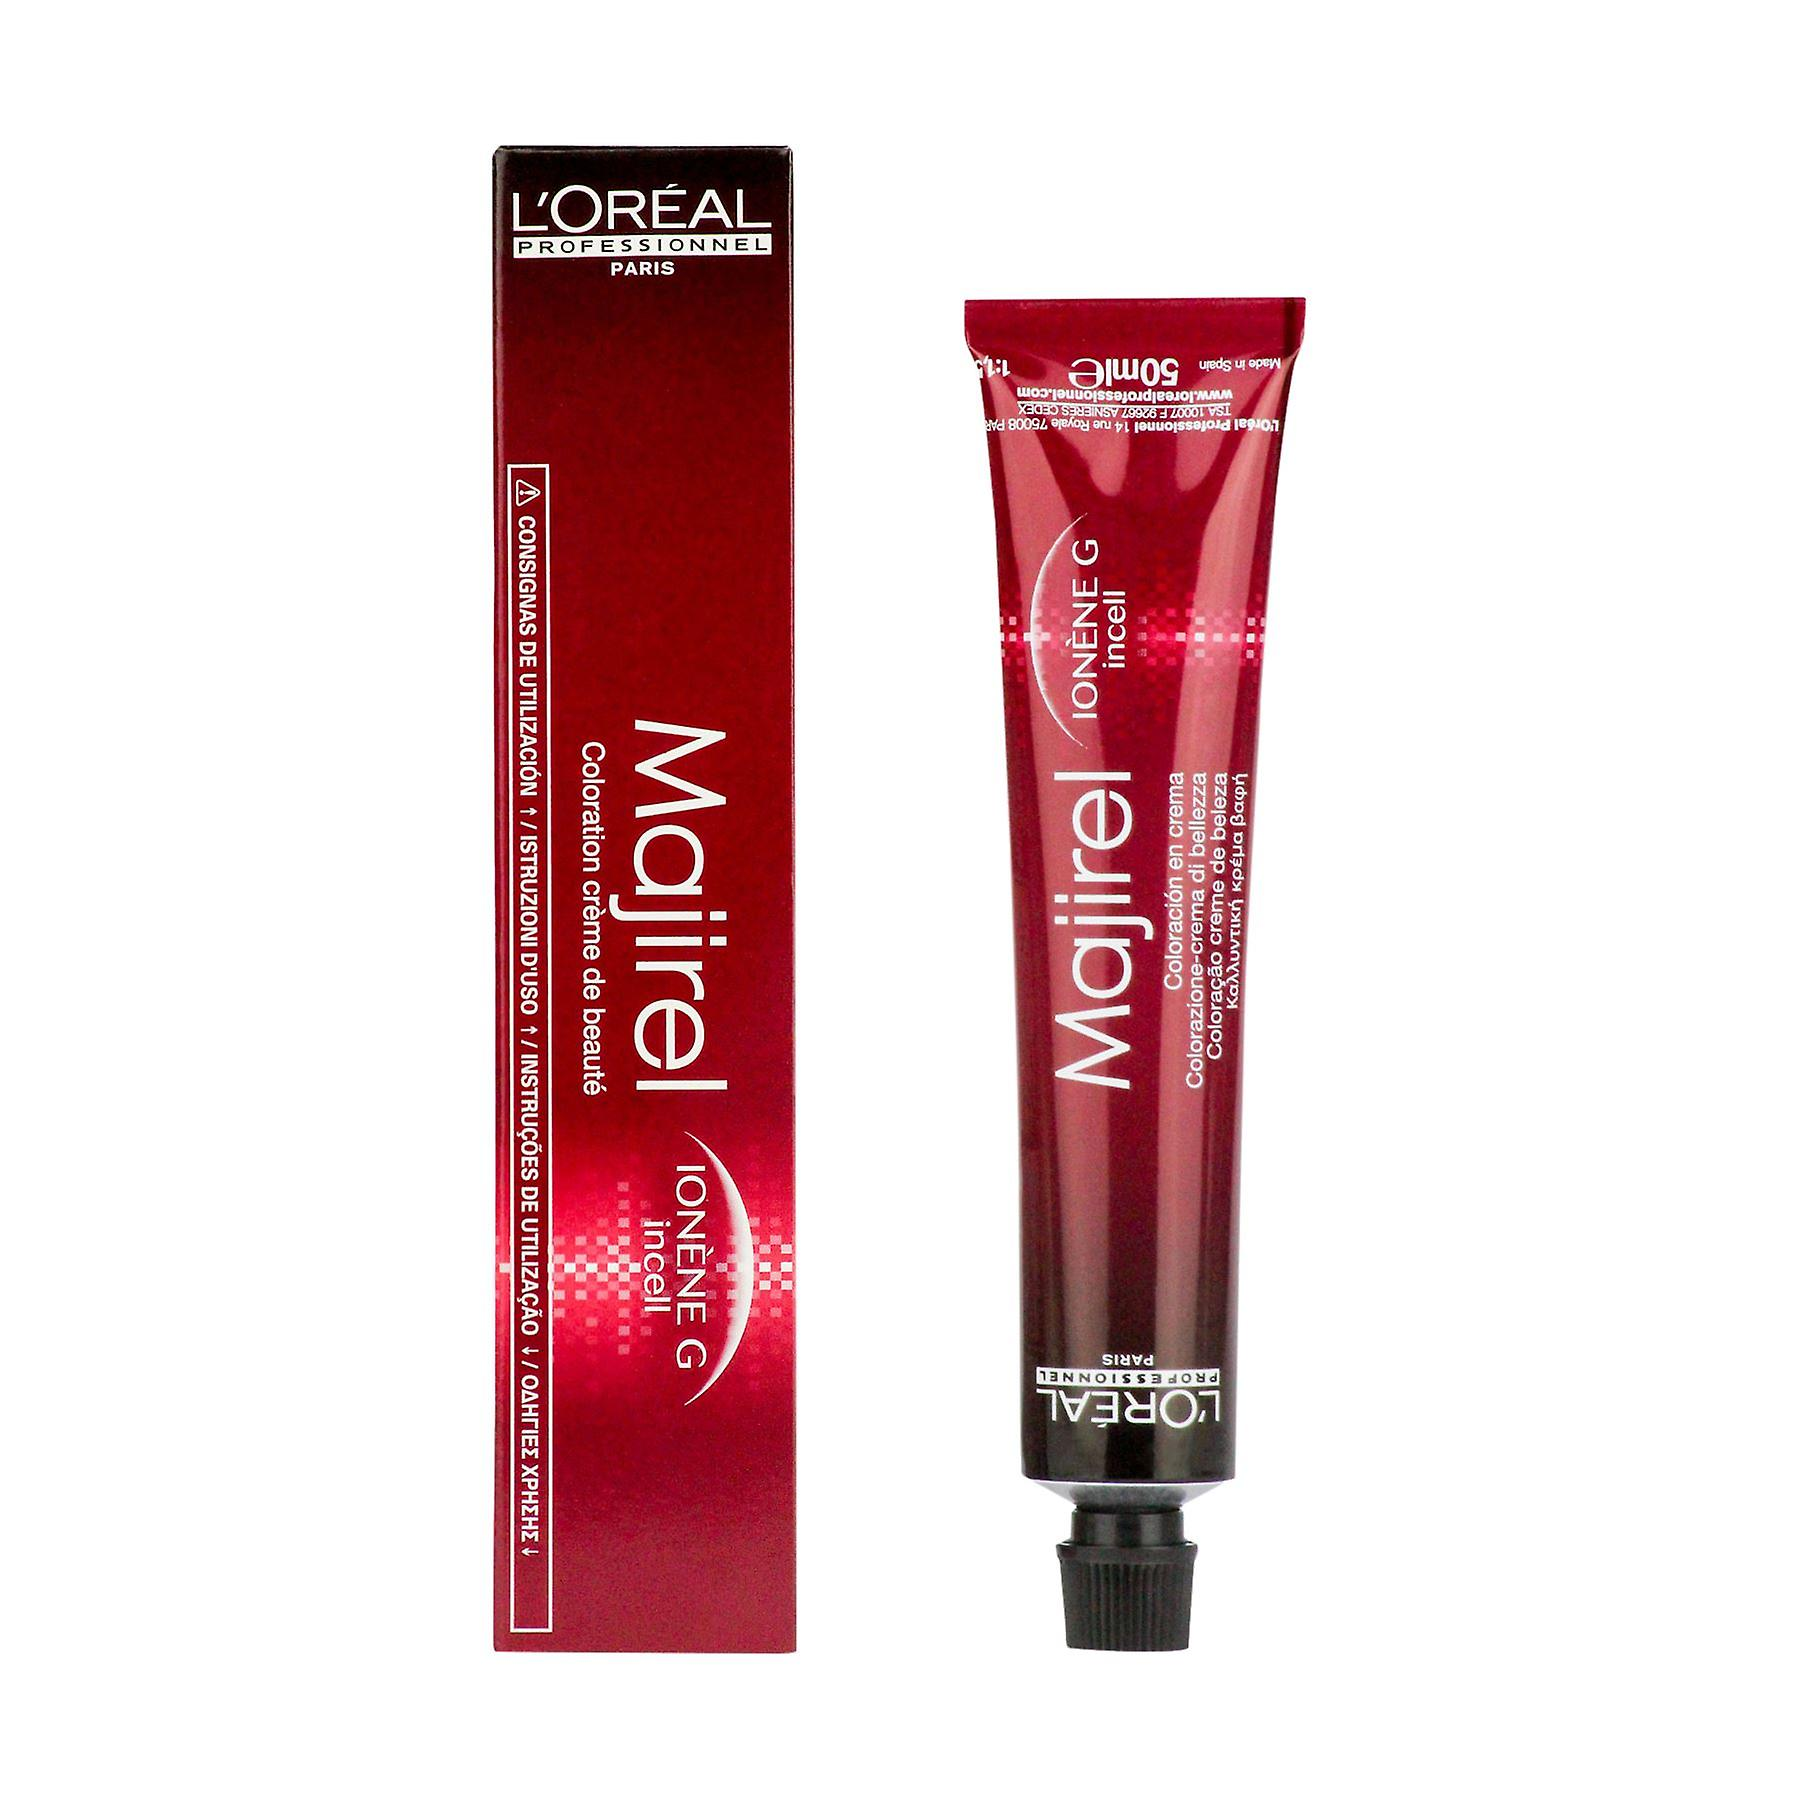 L'Oreal Professionnel Majirel 5, 1 Light Ash Brown 50ml